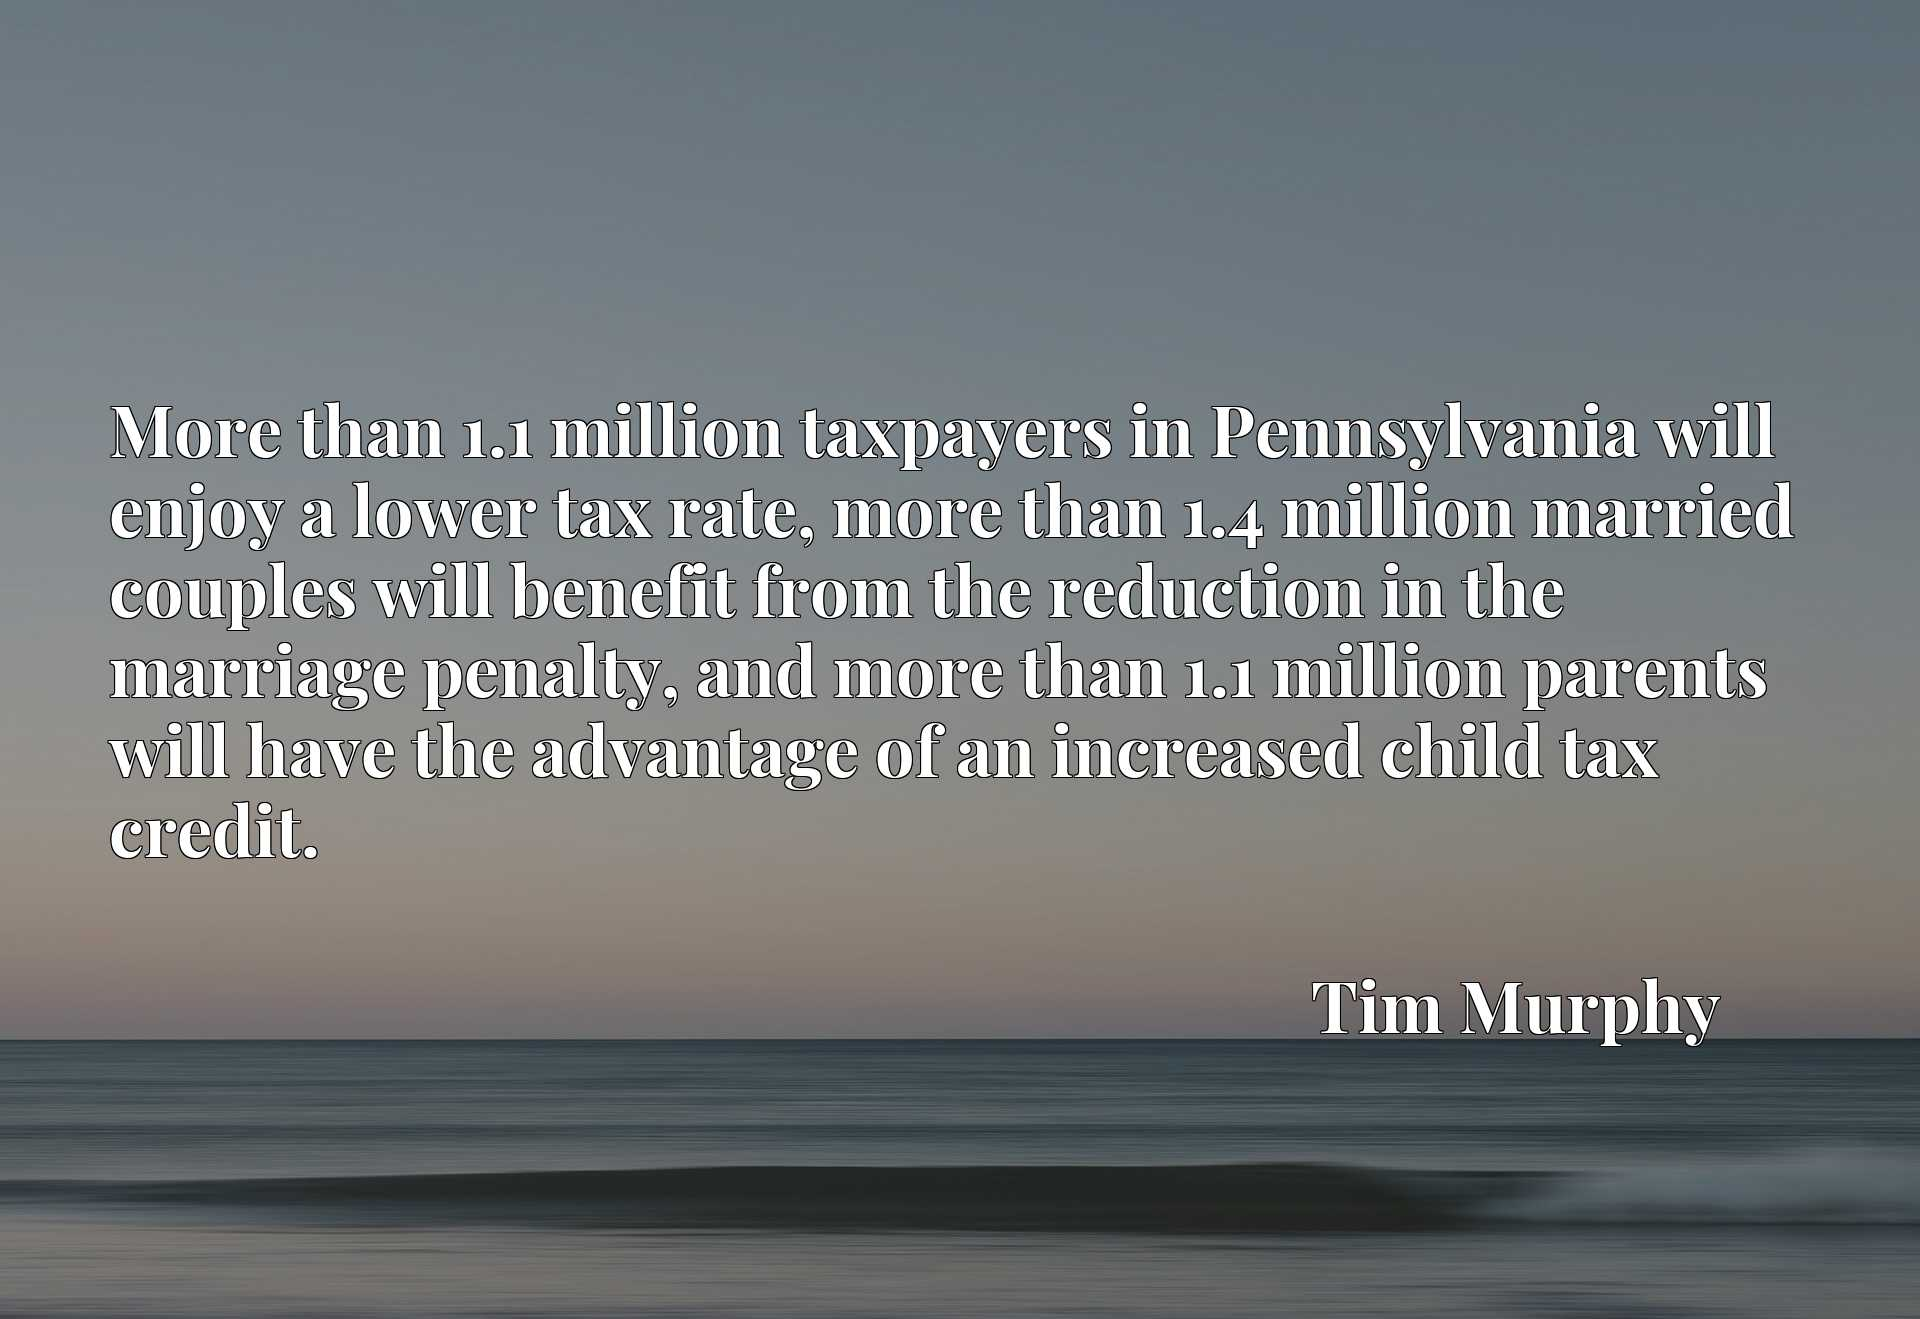 More than 1.1 million taxpayers in Pennsylvania will enjoy a lower tax rate, more than 1.4 million married couples will benefit from the reduction in the marriage penalty, and more than 1.1 million parents will have the advantage of an increased child tax credit.